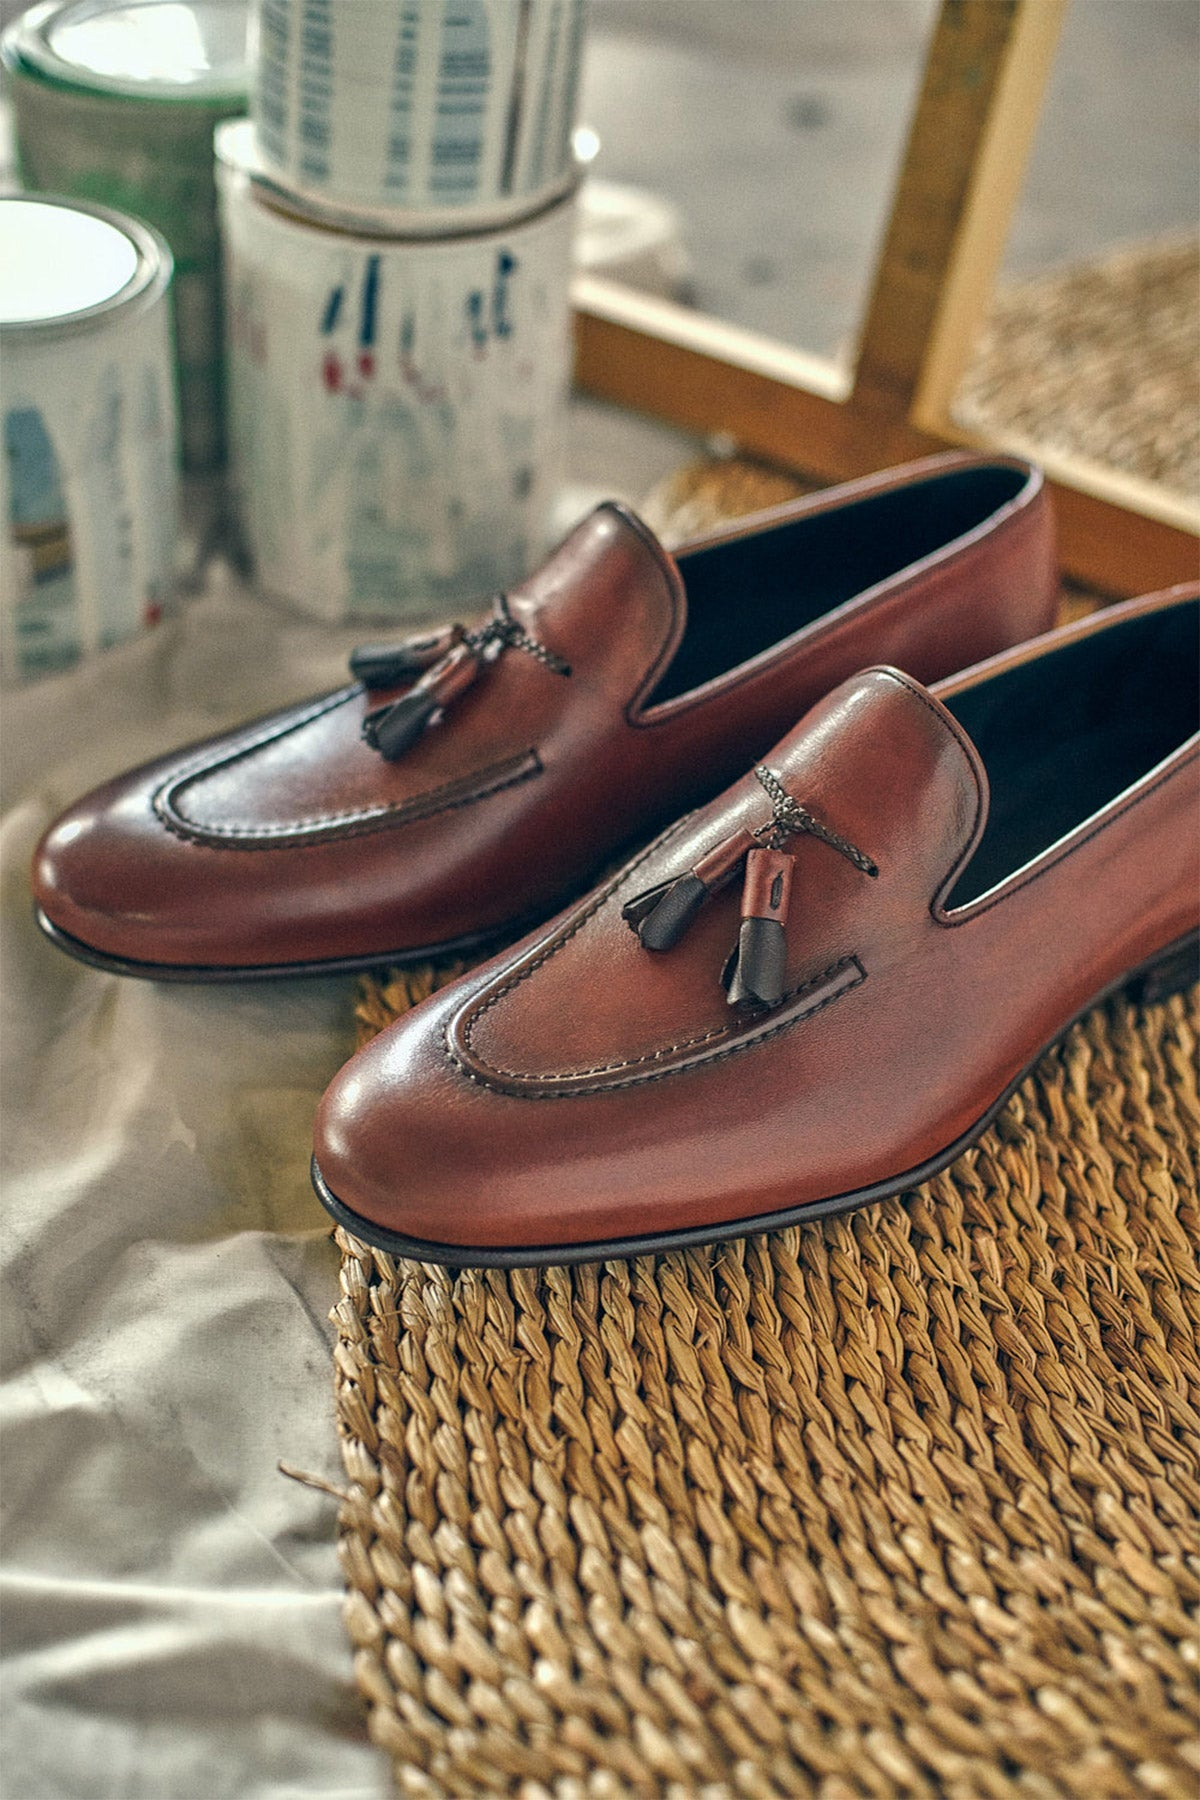 Tunes, Loafer Shoe - Mariano Shoes